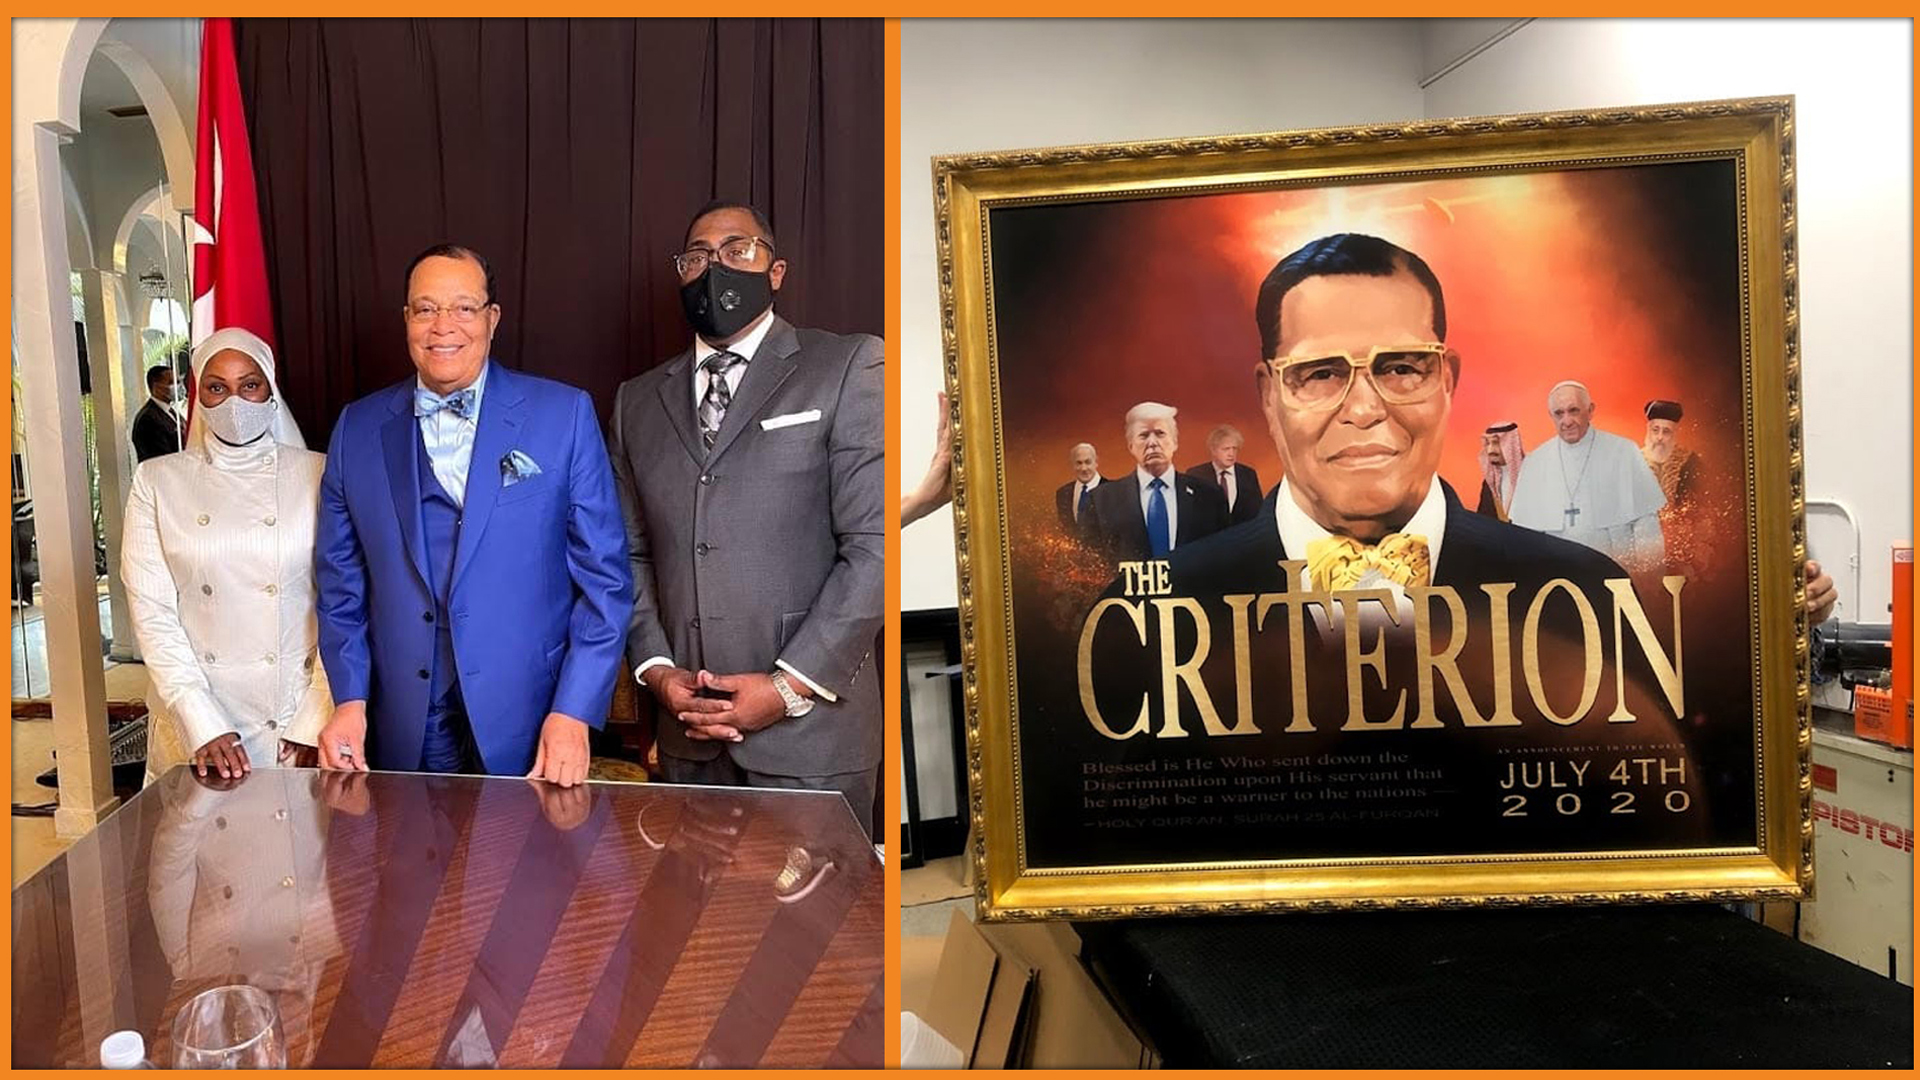 Carey Muhammad speaks on painting for Minister Louis Farrakhan